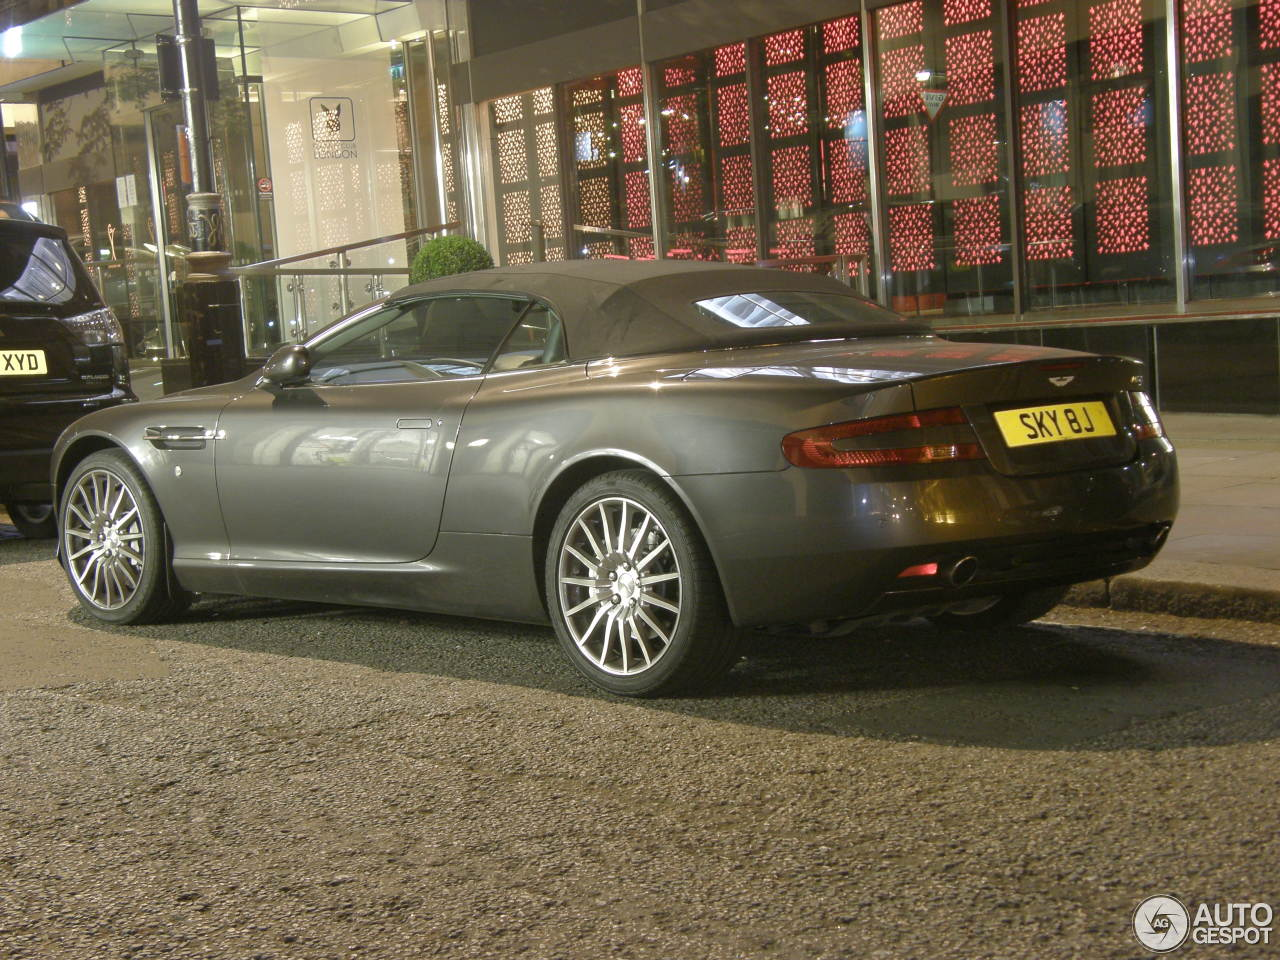 Aston Martin DB9 Volante - 29 January 2017 - Autogespot